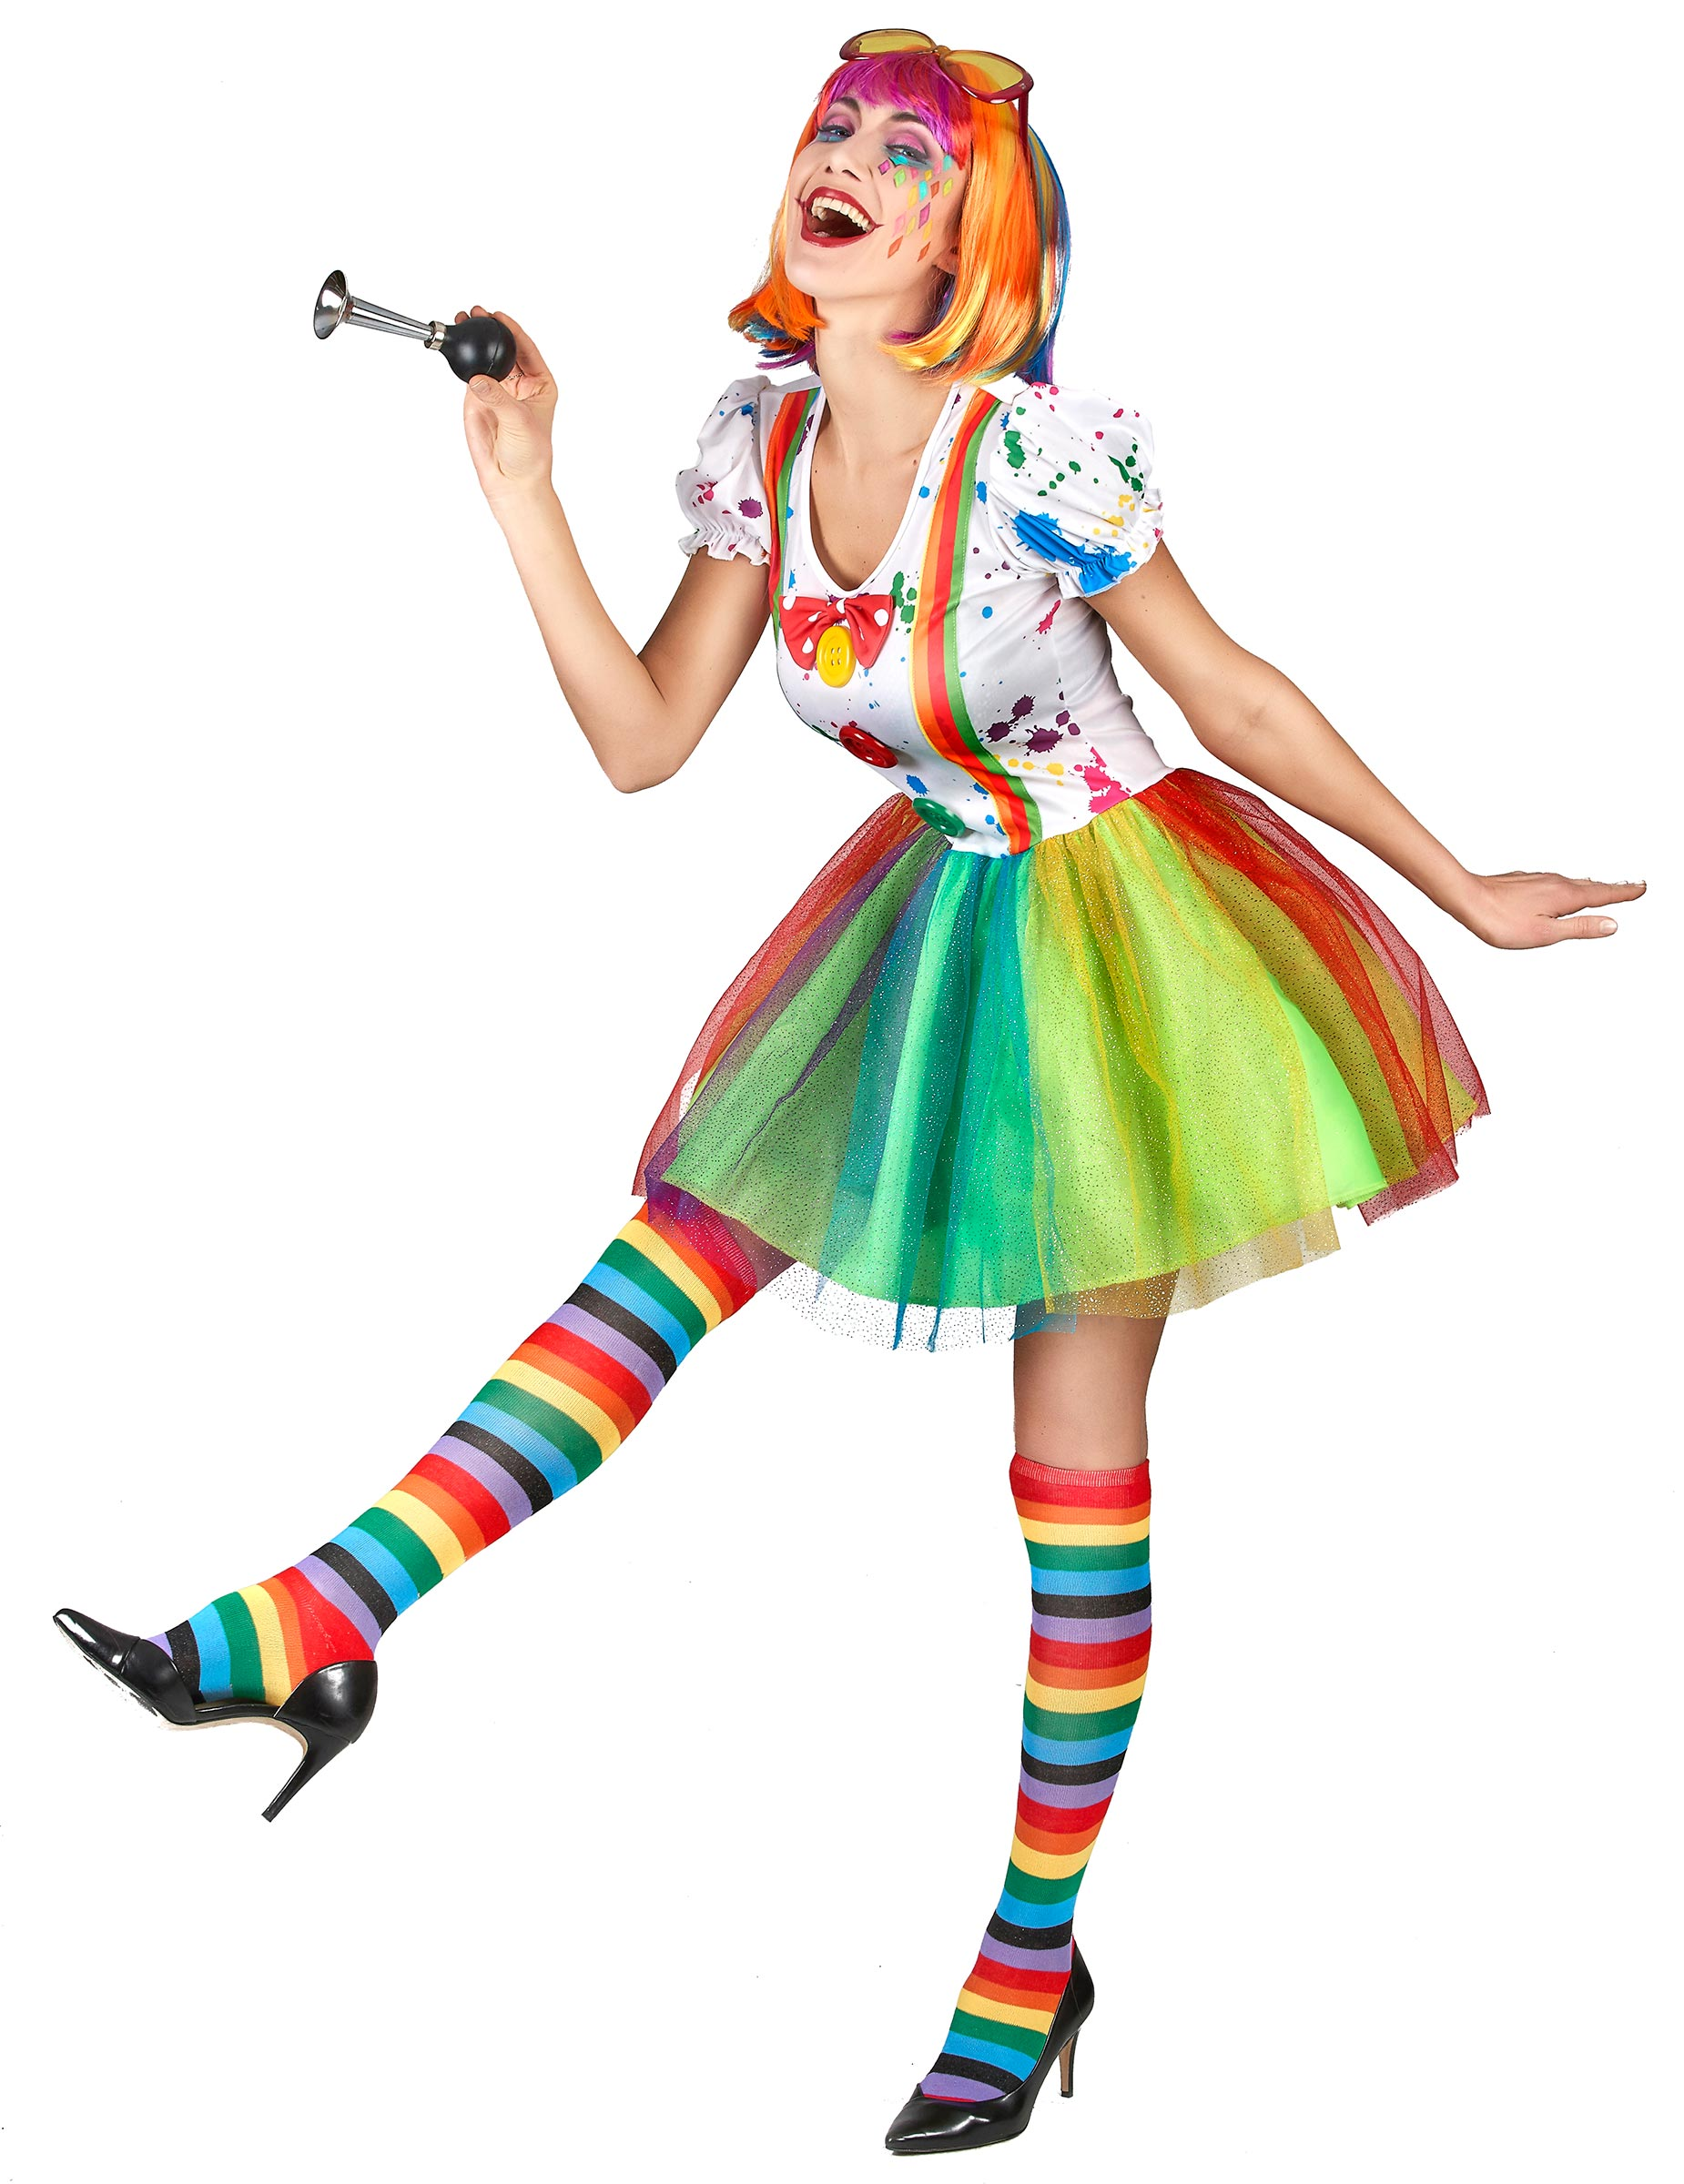 2cb05e99ddfe Donna Adulti Vestiti Di Da Costume Pittore Clown e Per Costumi wFqI7qH